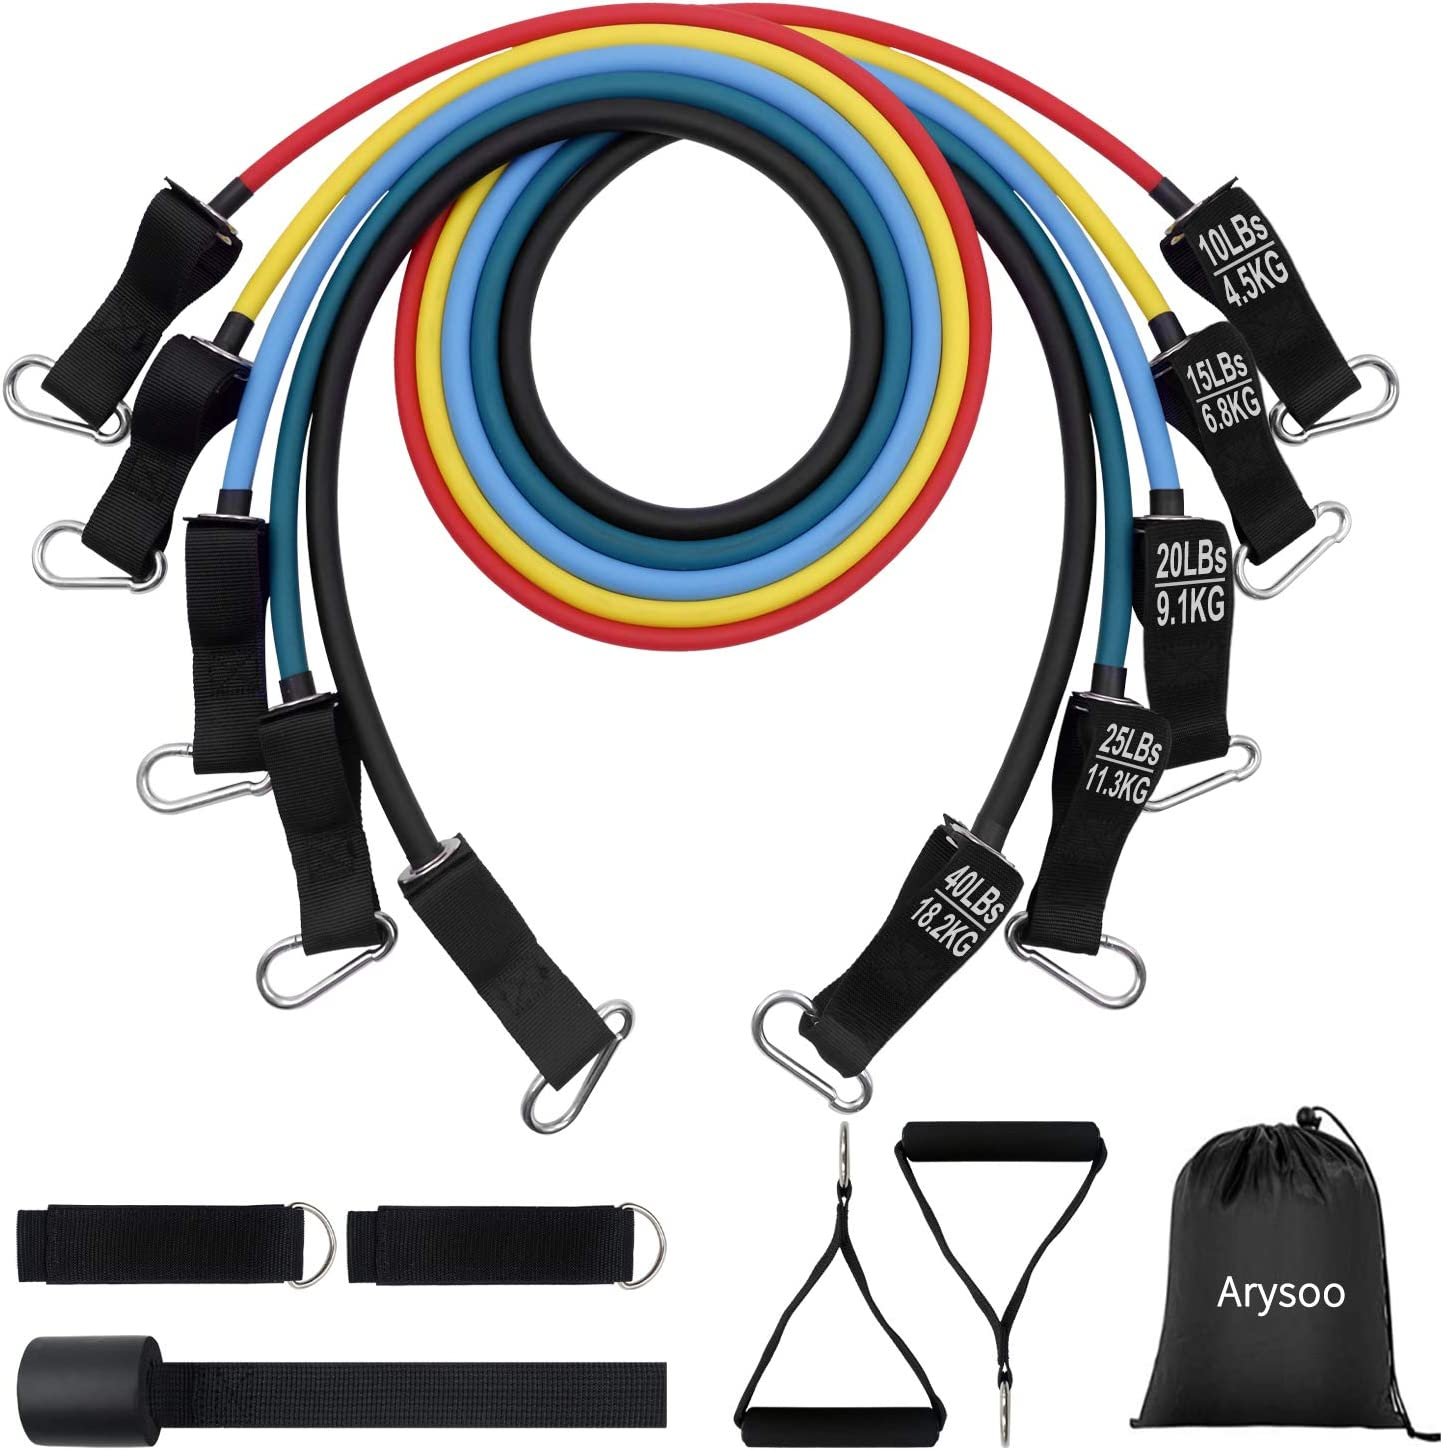 Arysoo 110LB Resistance Bands Set with Handles, Ankle Straps, Door Anchor and Workout Guide Exercise Bands for Men Women Resistance Training, Home Workouts